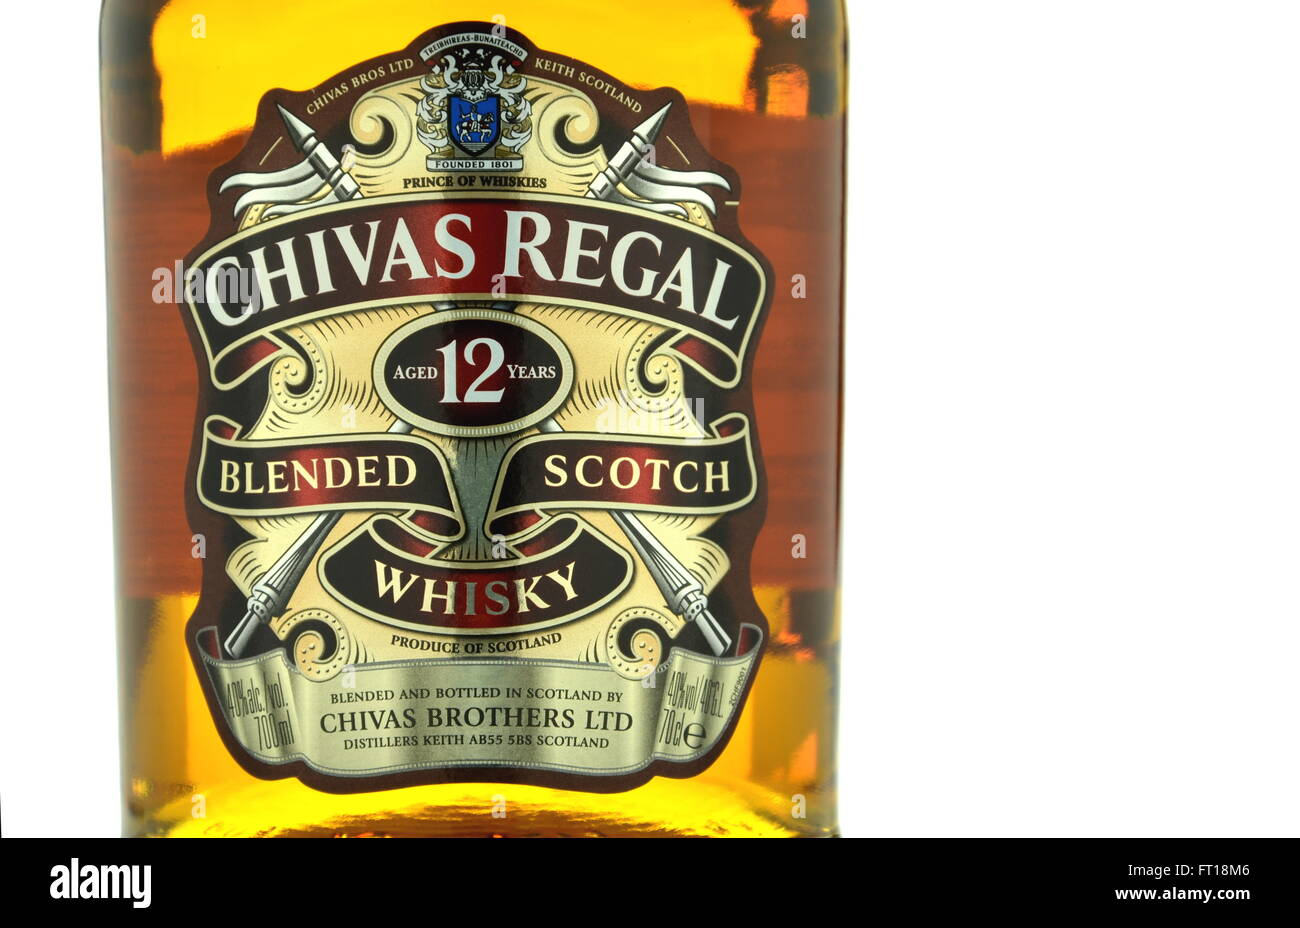 Chivas regal whiskey isolated on white background stock photo chivas regal whiskey isolated on white background voltagebd Images